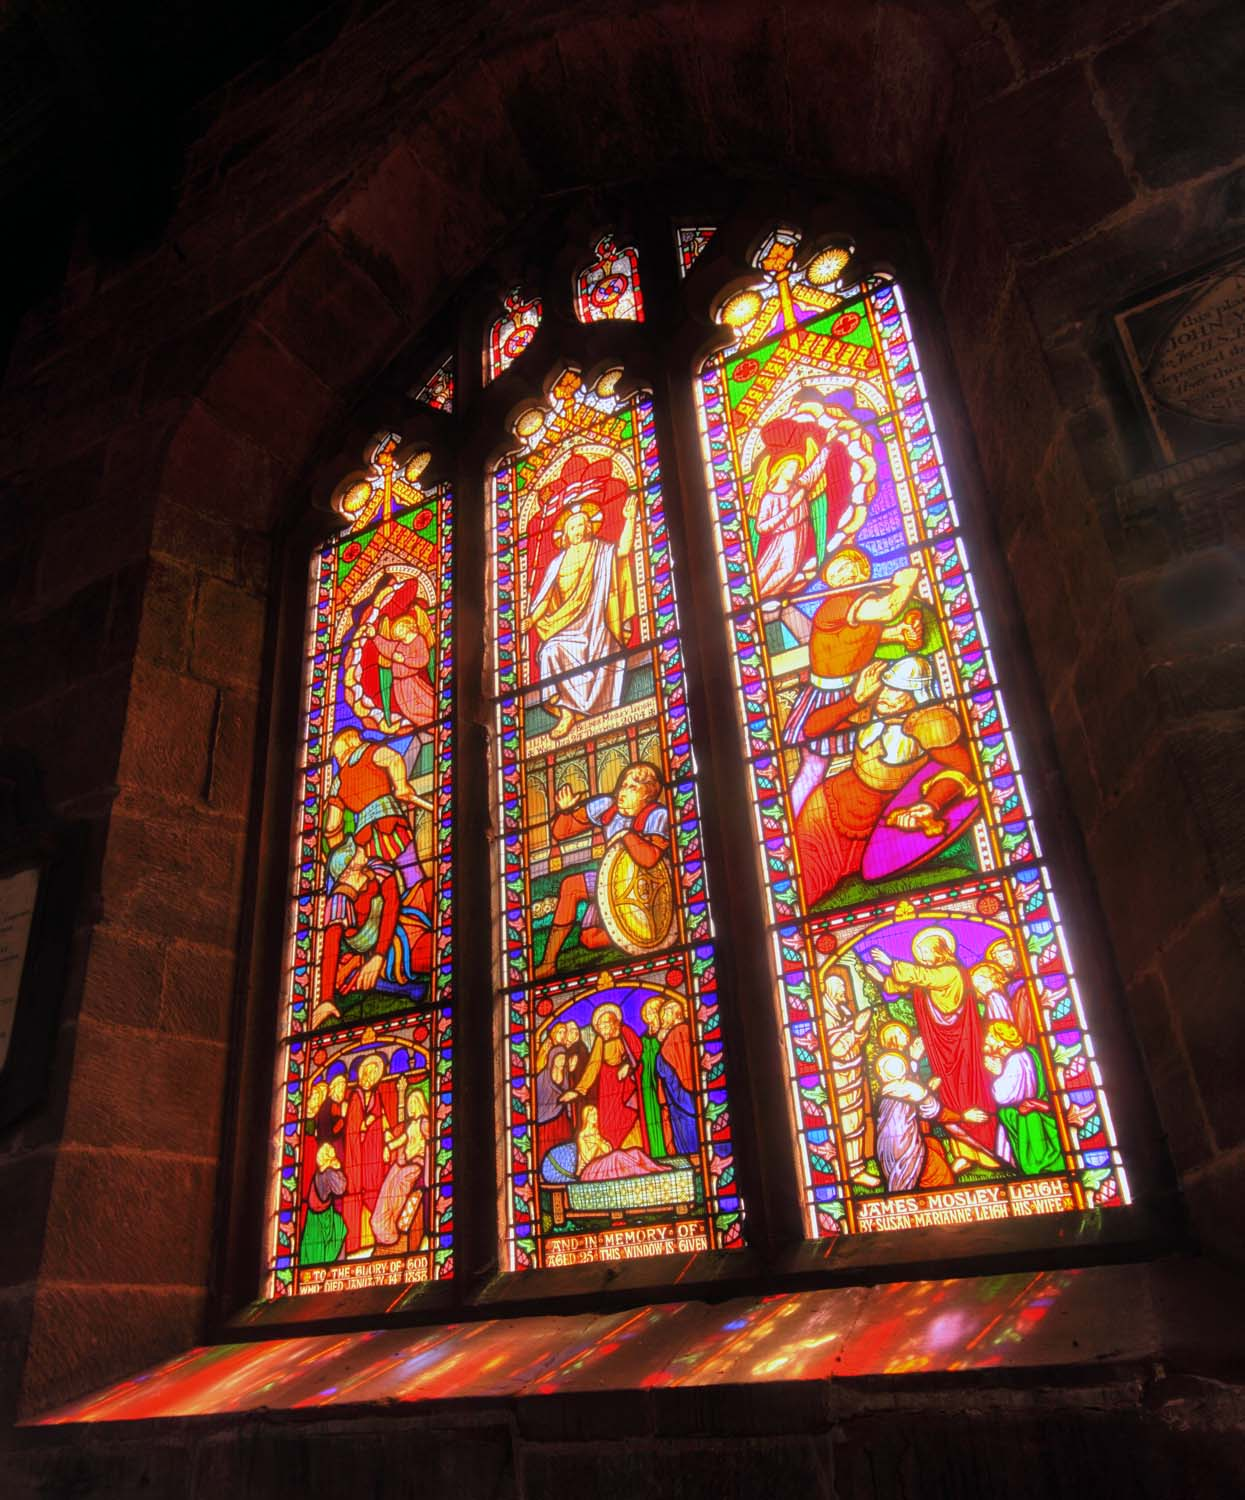 Budworth,st,Mary,All,saints,great,Cheshire,Northwich,UK,England,Village,staned,stainned,glass,365days,HDR,high dynamic range,george,dragon,pub,church,interior,inside,building,buildings,built,architecture,hotpix!